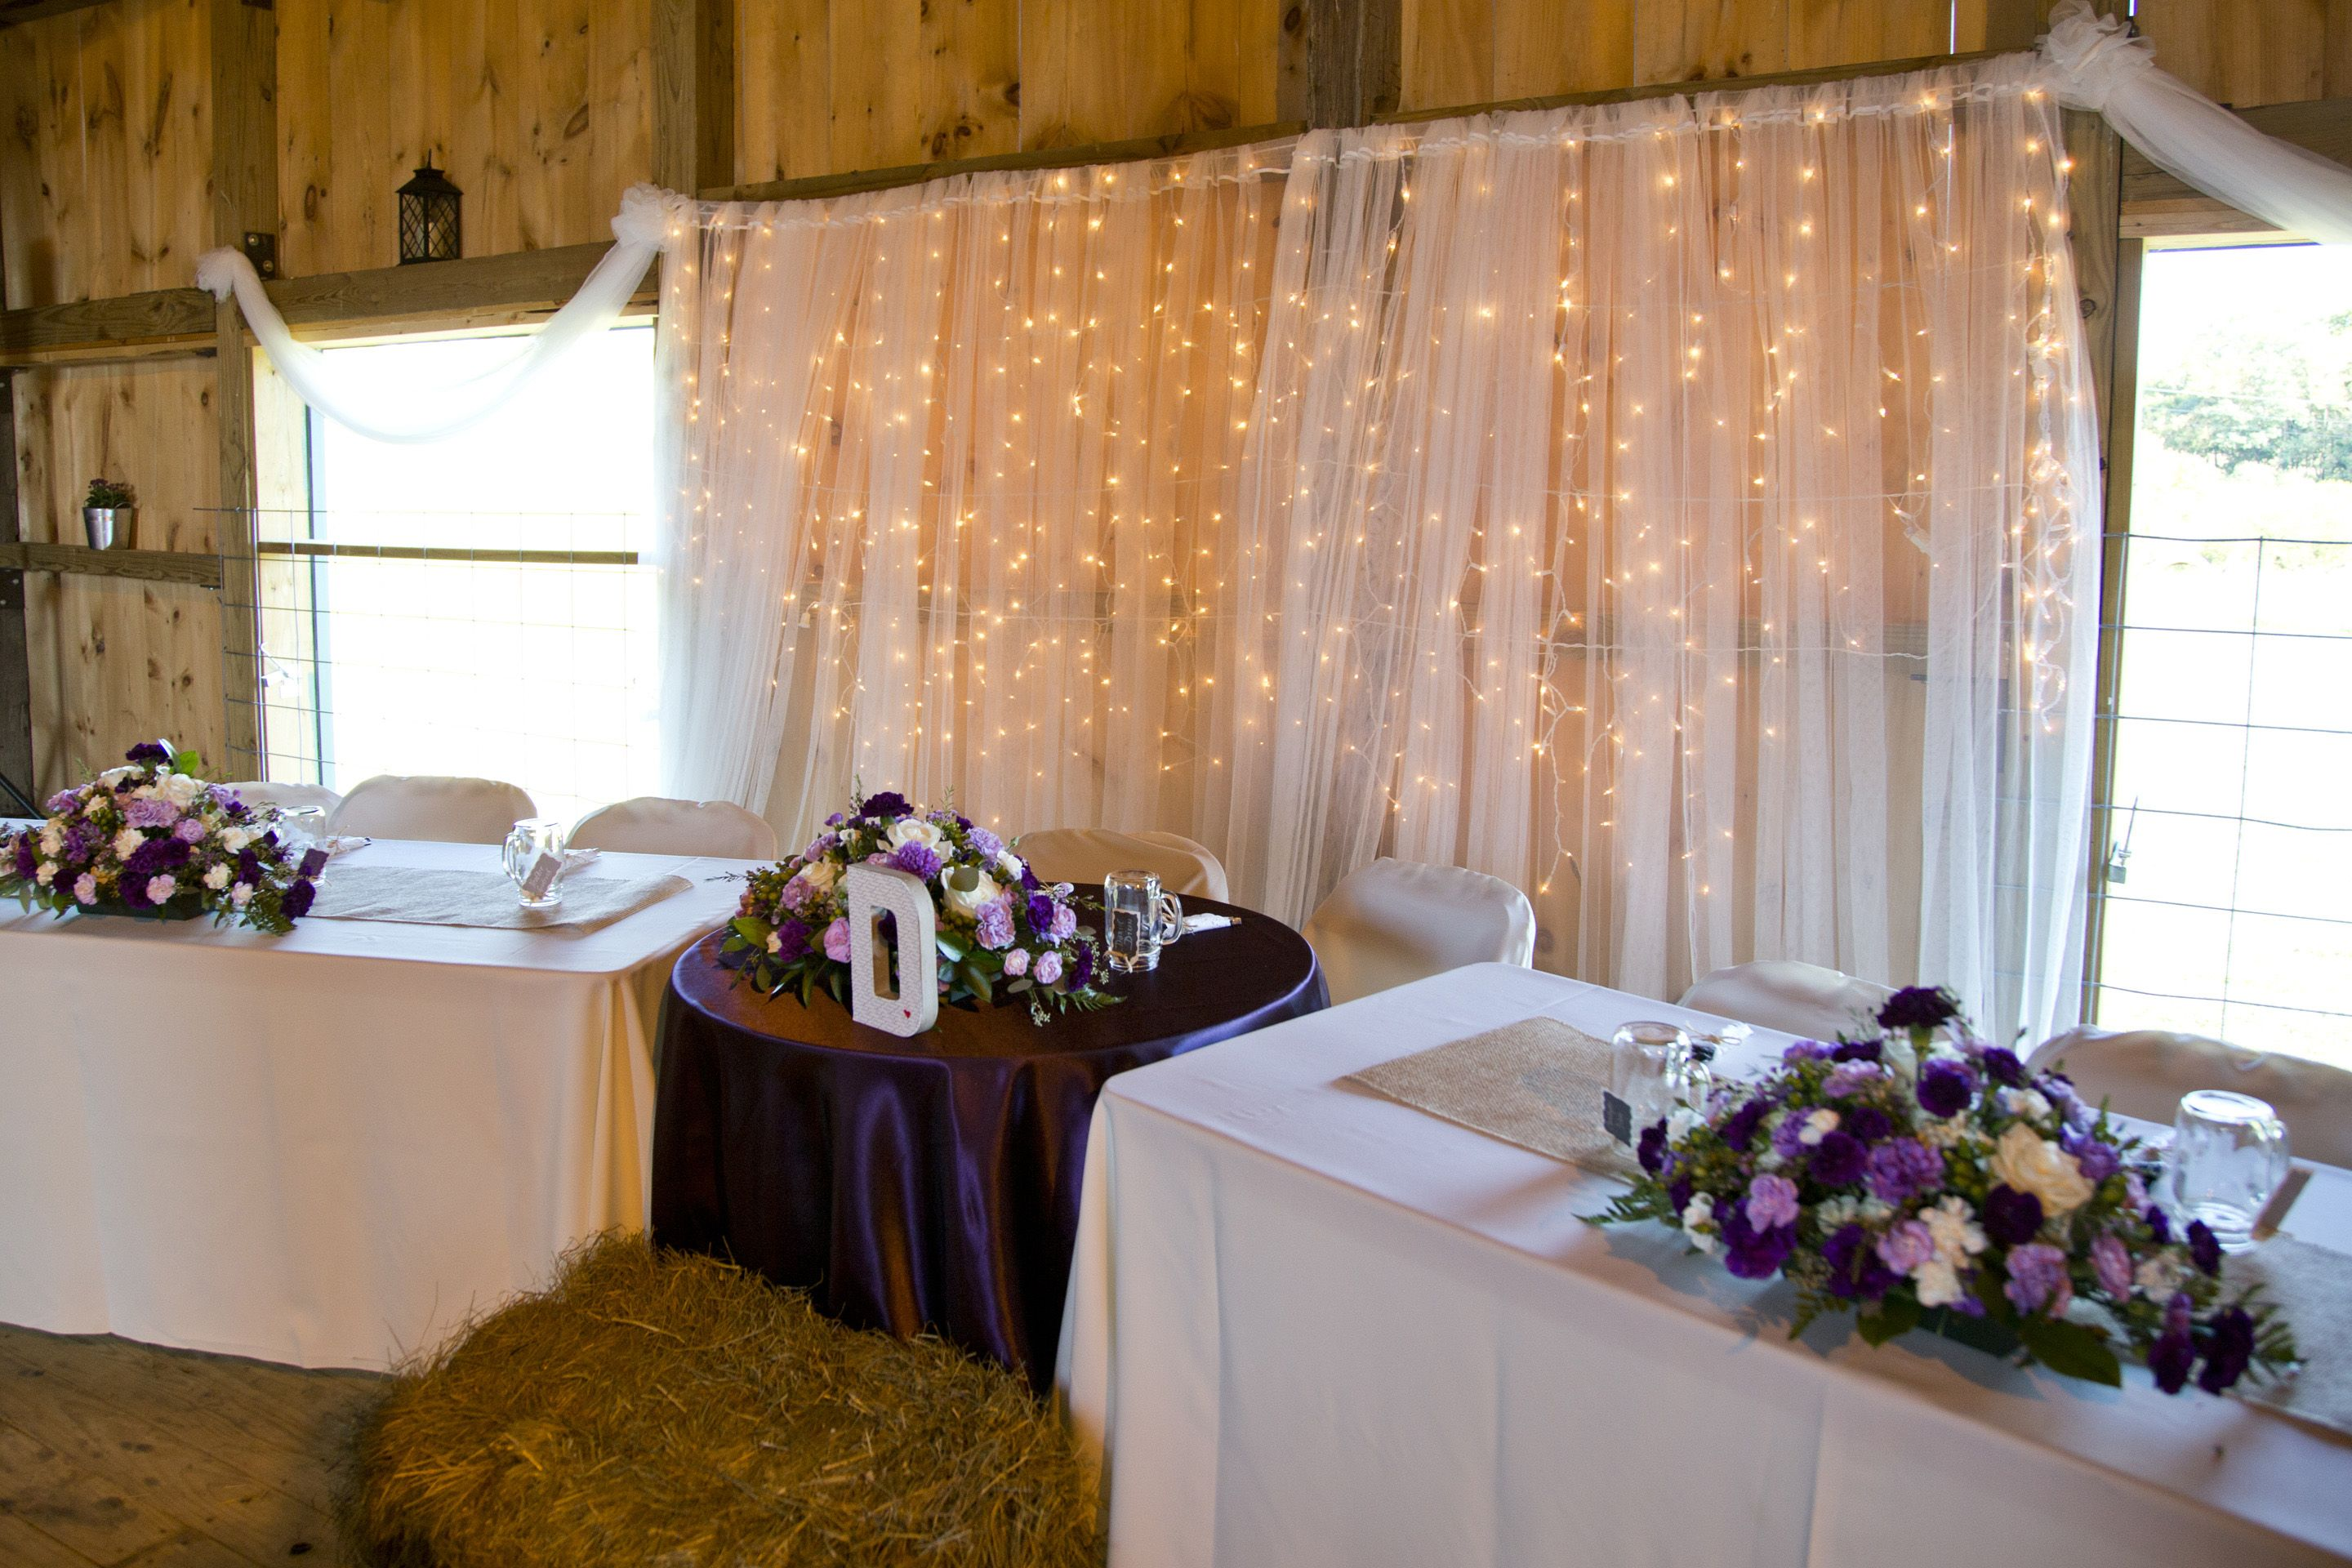 Our Pinterest inspired wedding. Bridal party head table with lights and fabric backdrop. Photo courtesy of Stephanie Leigh Photography.